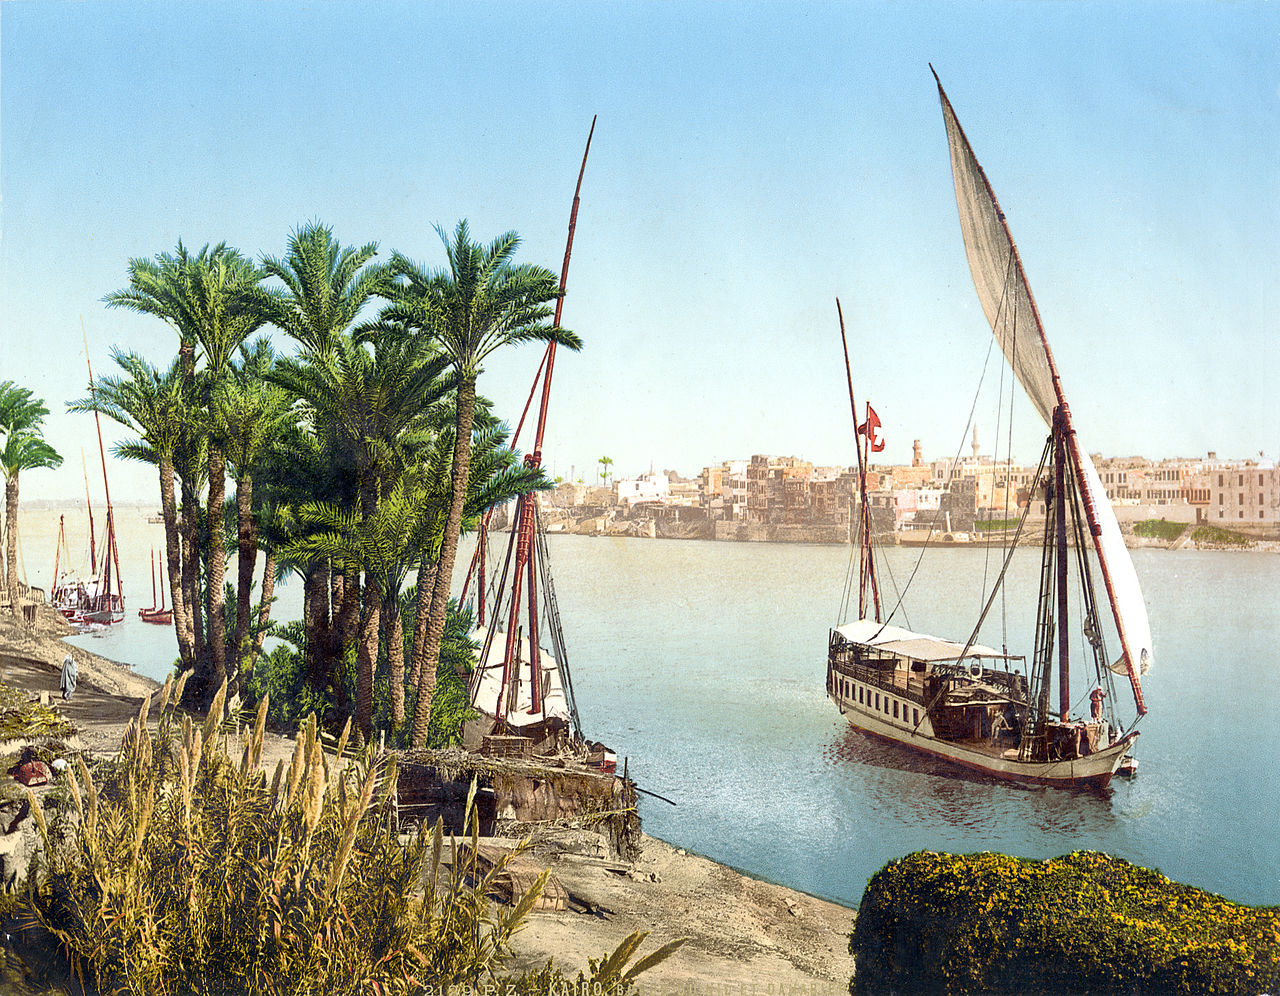 Sailboat on the Nile, Cairo, Egypt